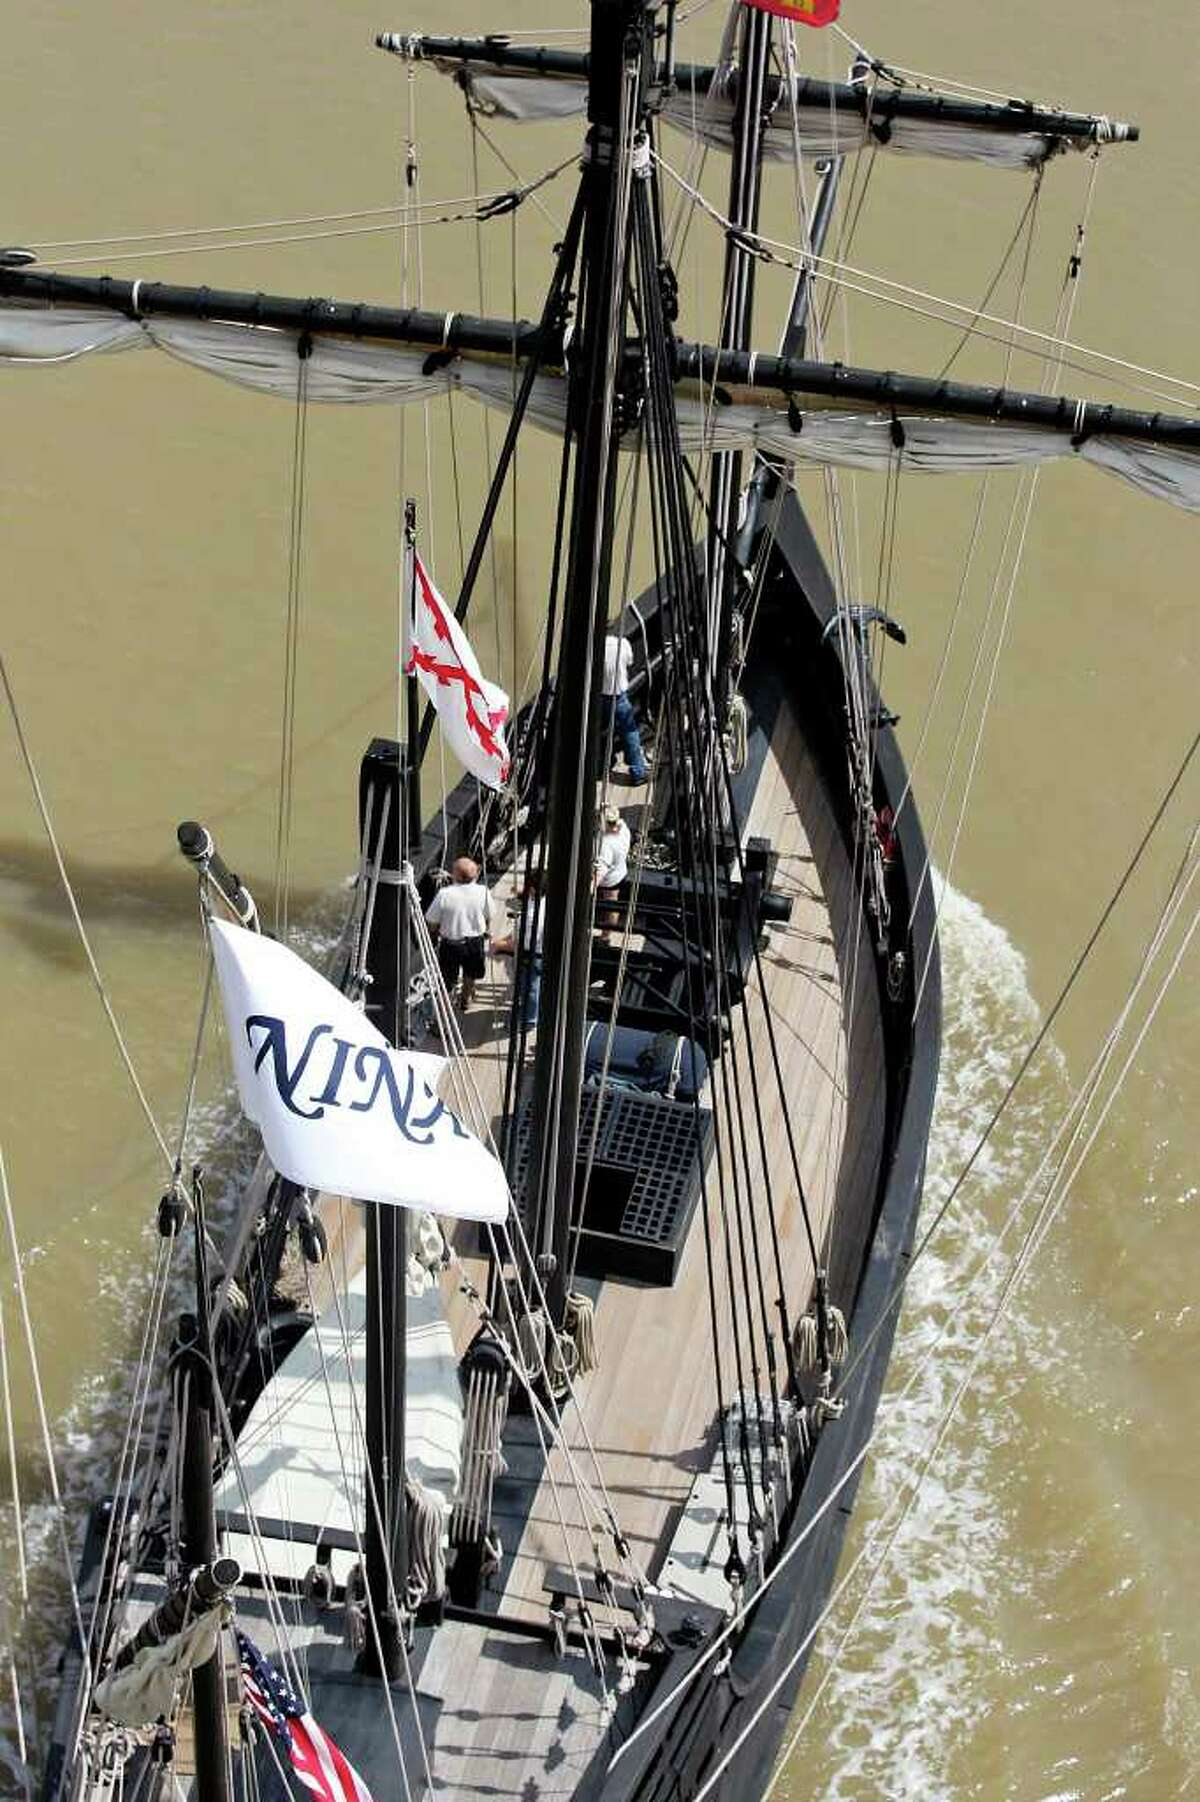 In this file photo, a replica of Columbus' ship the Nina passes under the Matagorda Bridge on its way to dock at Matagorda Harbor with the Pinta (not pictured).